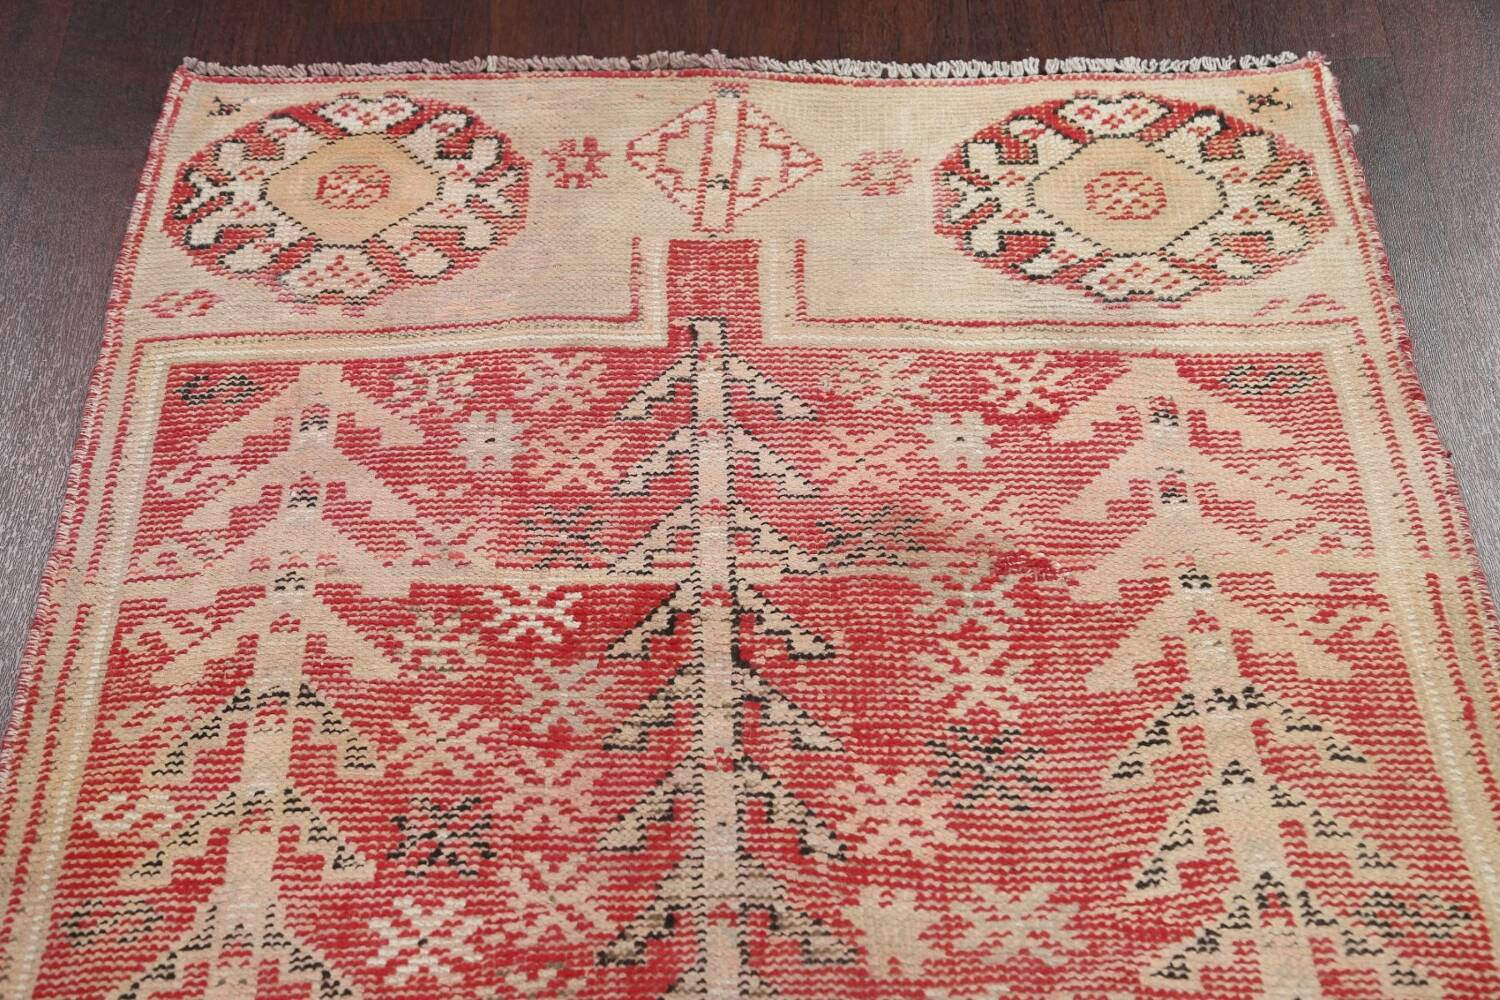 Antique Distressed Malayer Persian Runner Rug 4x12 image 9